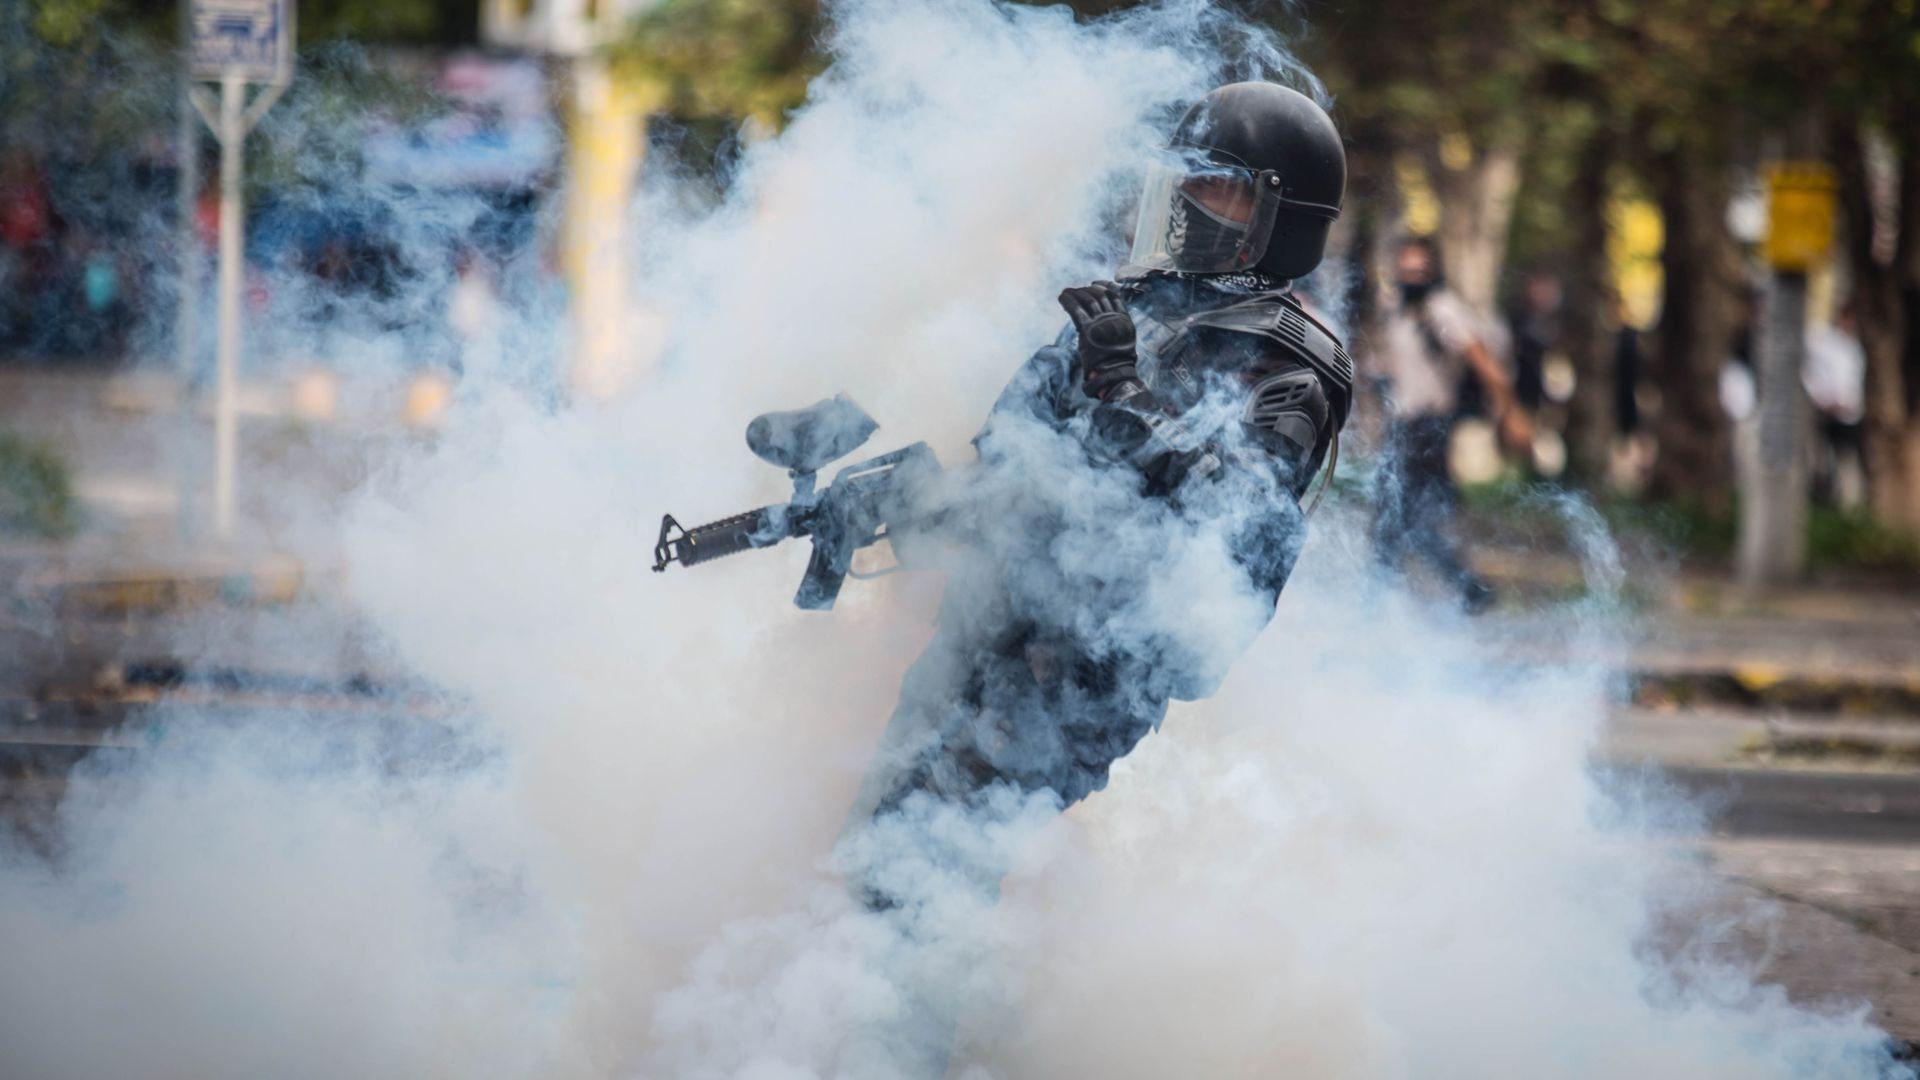 Riot police confront demonstrators during clashes in Quito.